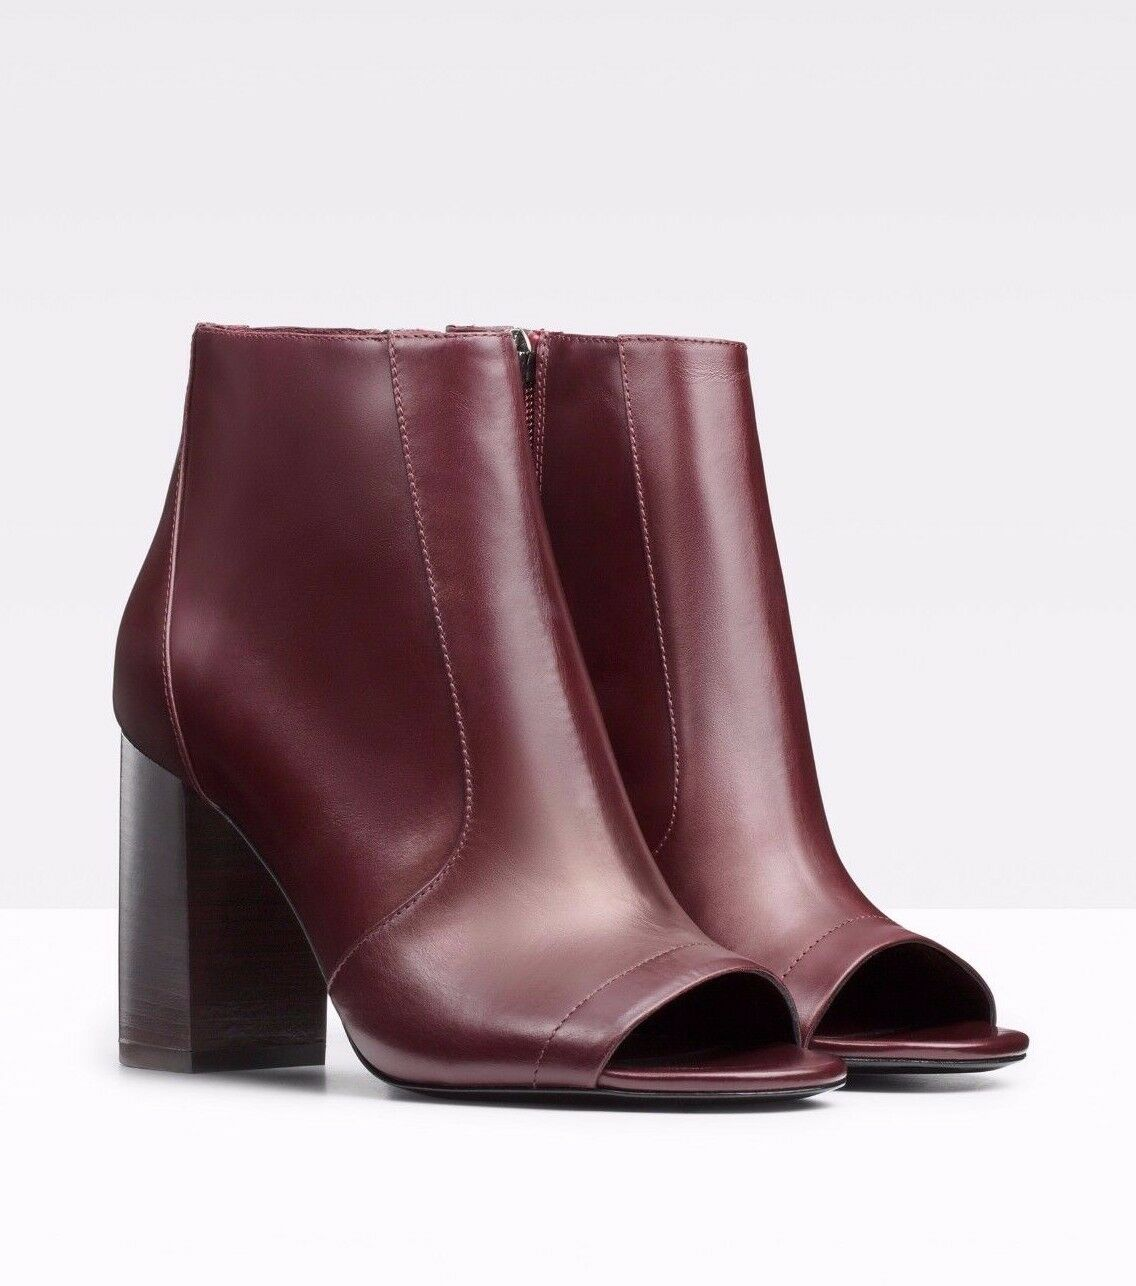 Vince. Chaussures Fionn Peep Toe Chaussures bottines bottines bottines talons Fig en Cuir 8  425 1c59b4